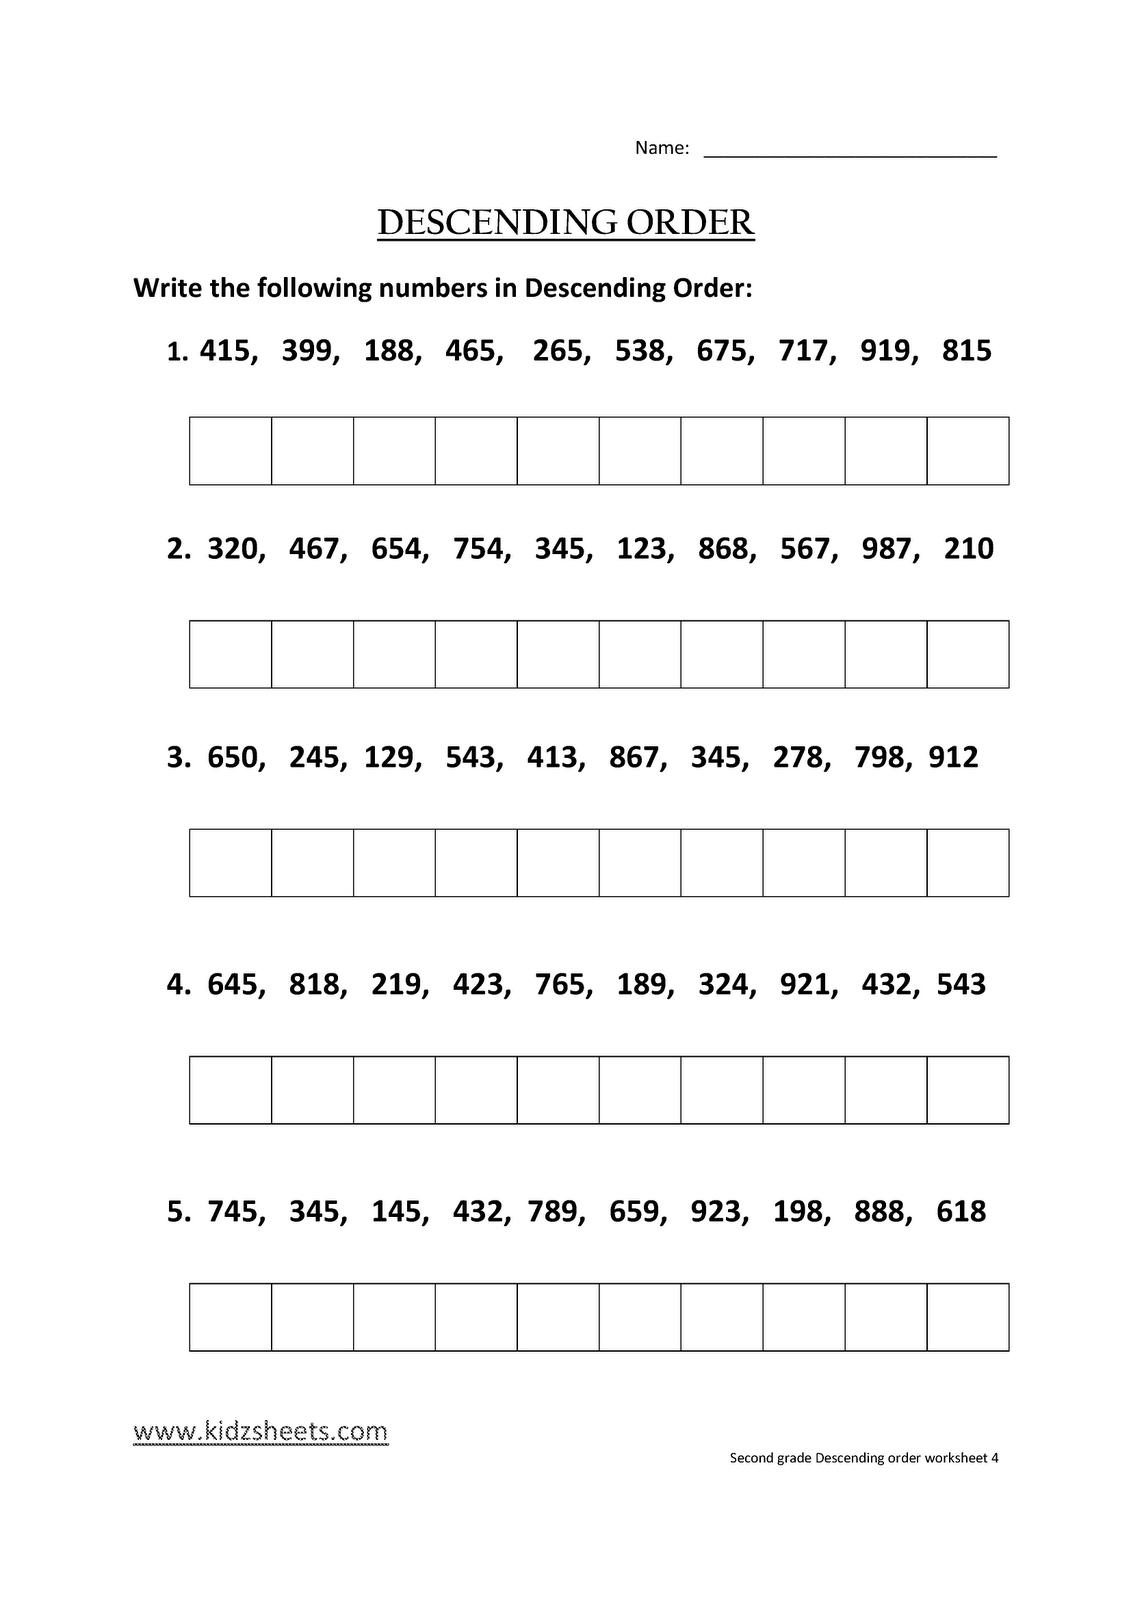 Kidz Worksheets Second Grade Descending Order Worksheet4